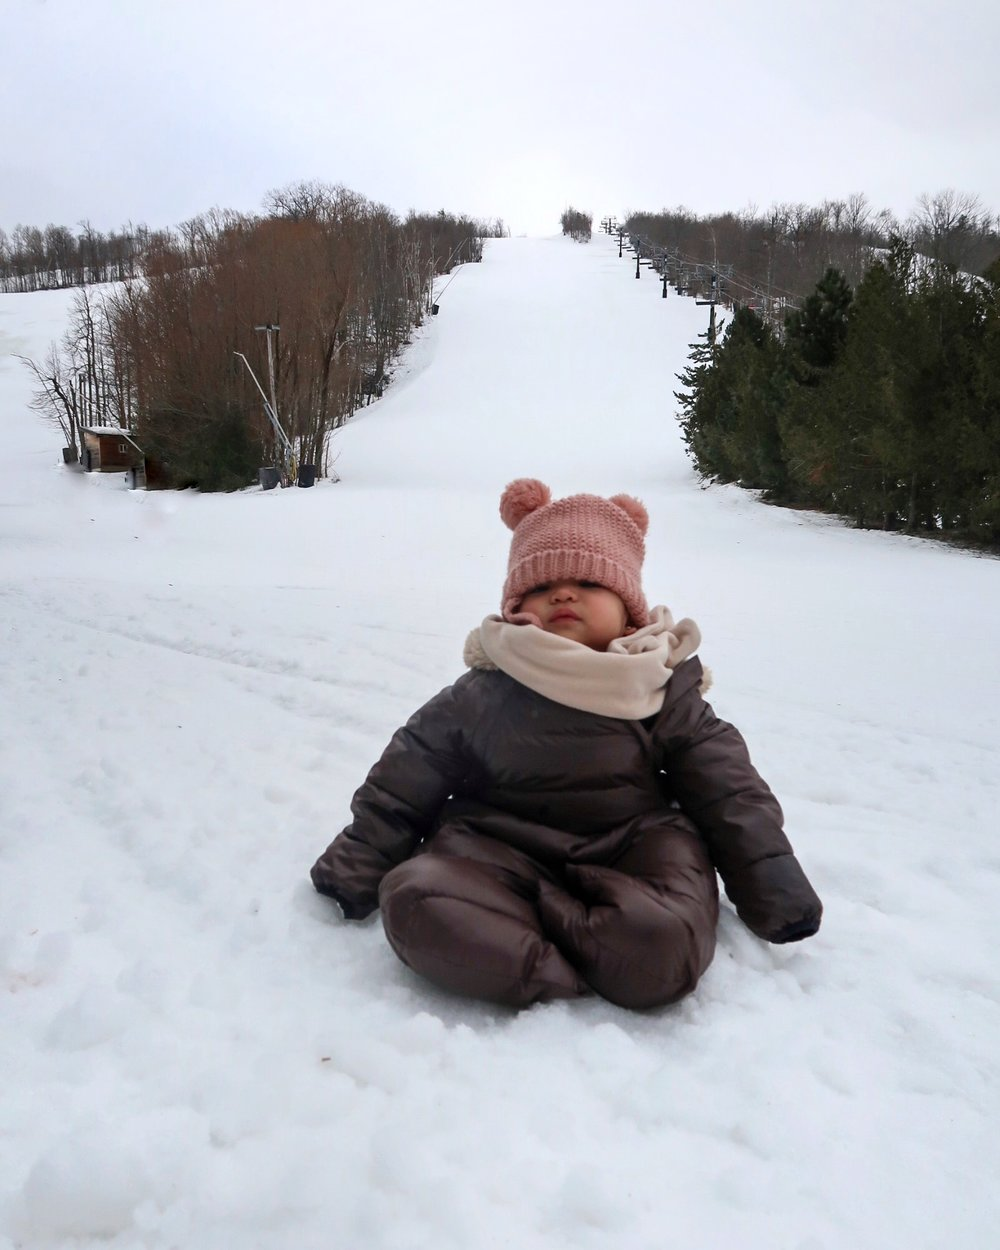 Baby Noa waiting for her big sister at the bottom of the hill!